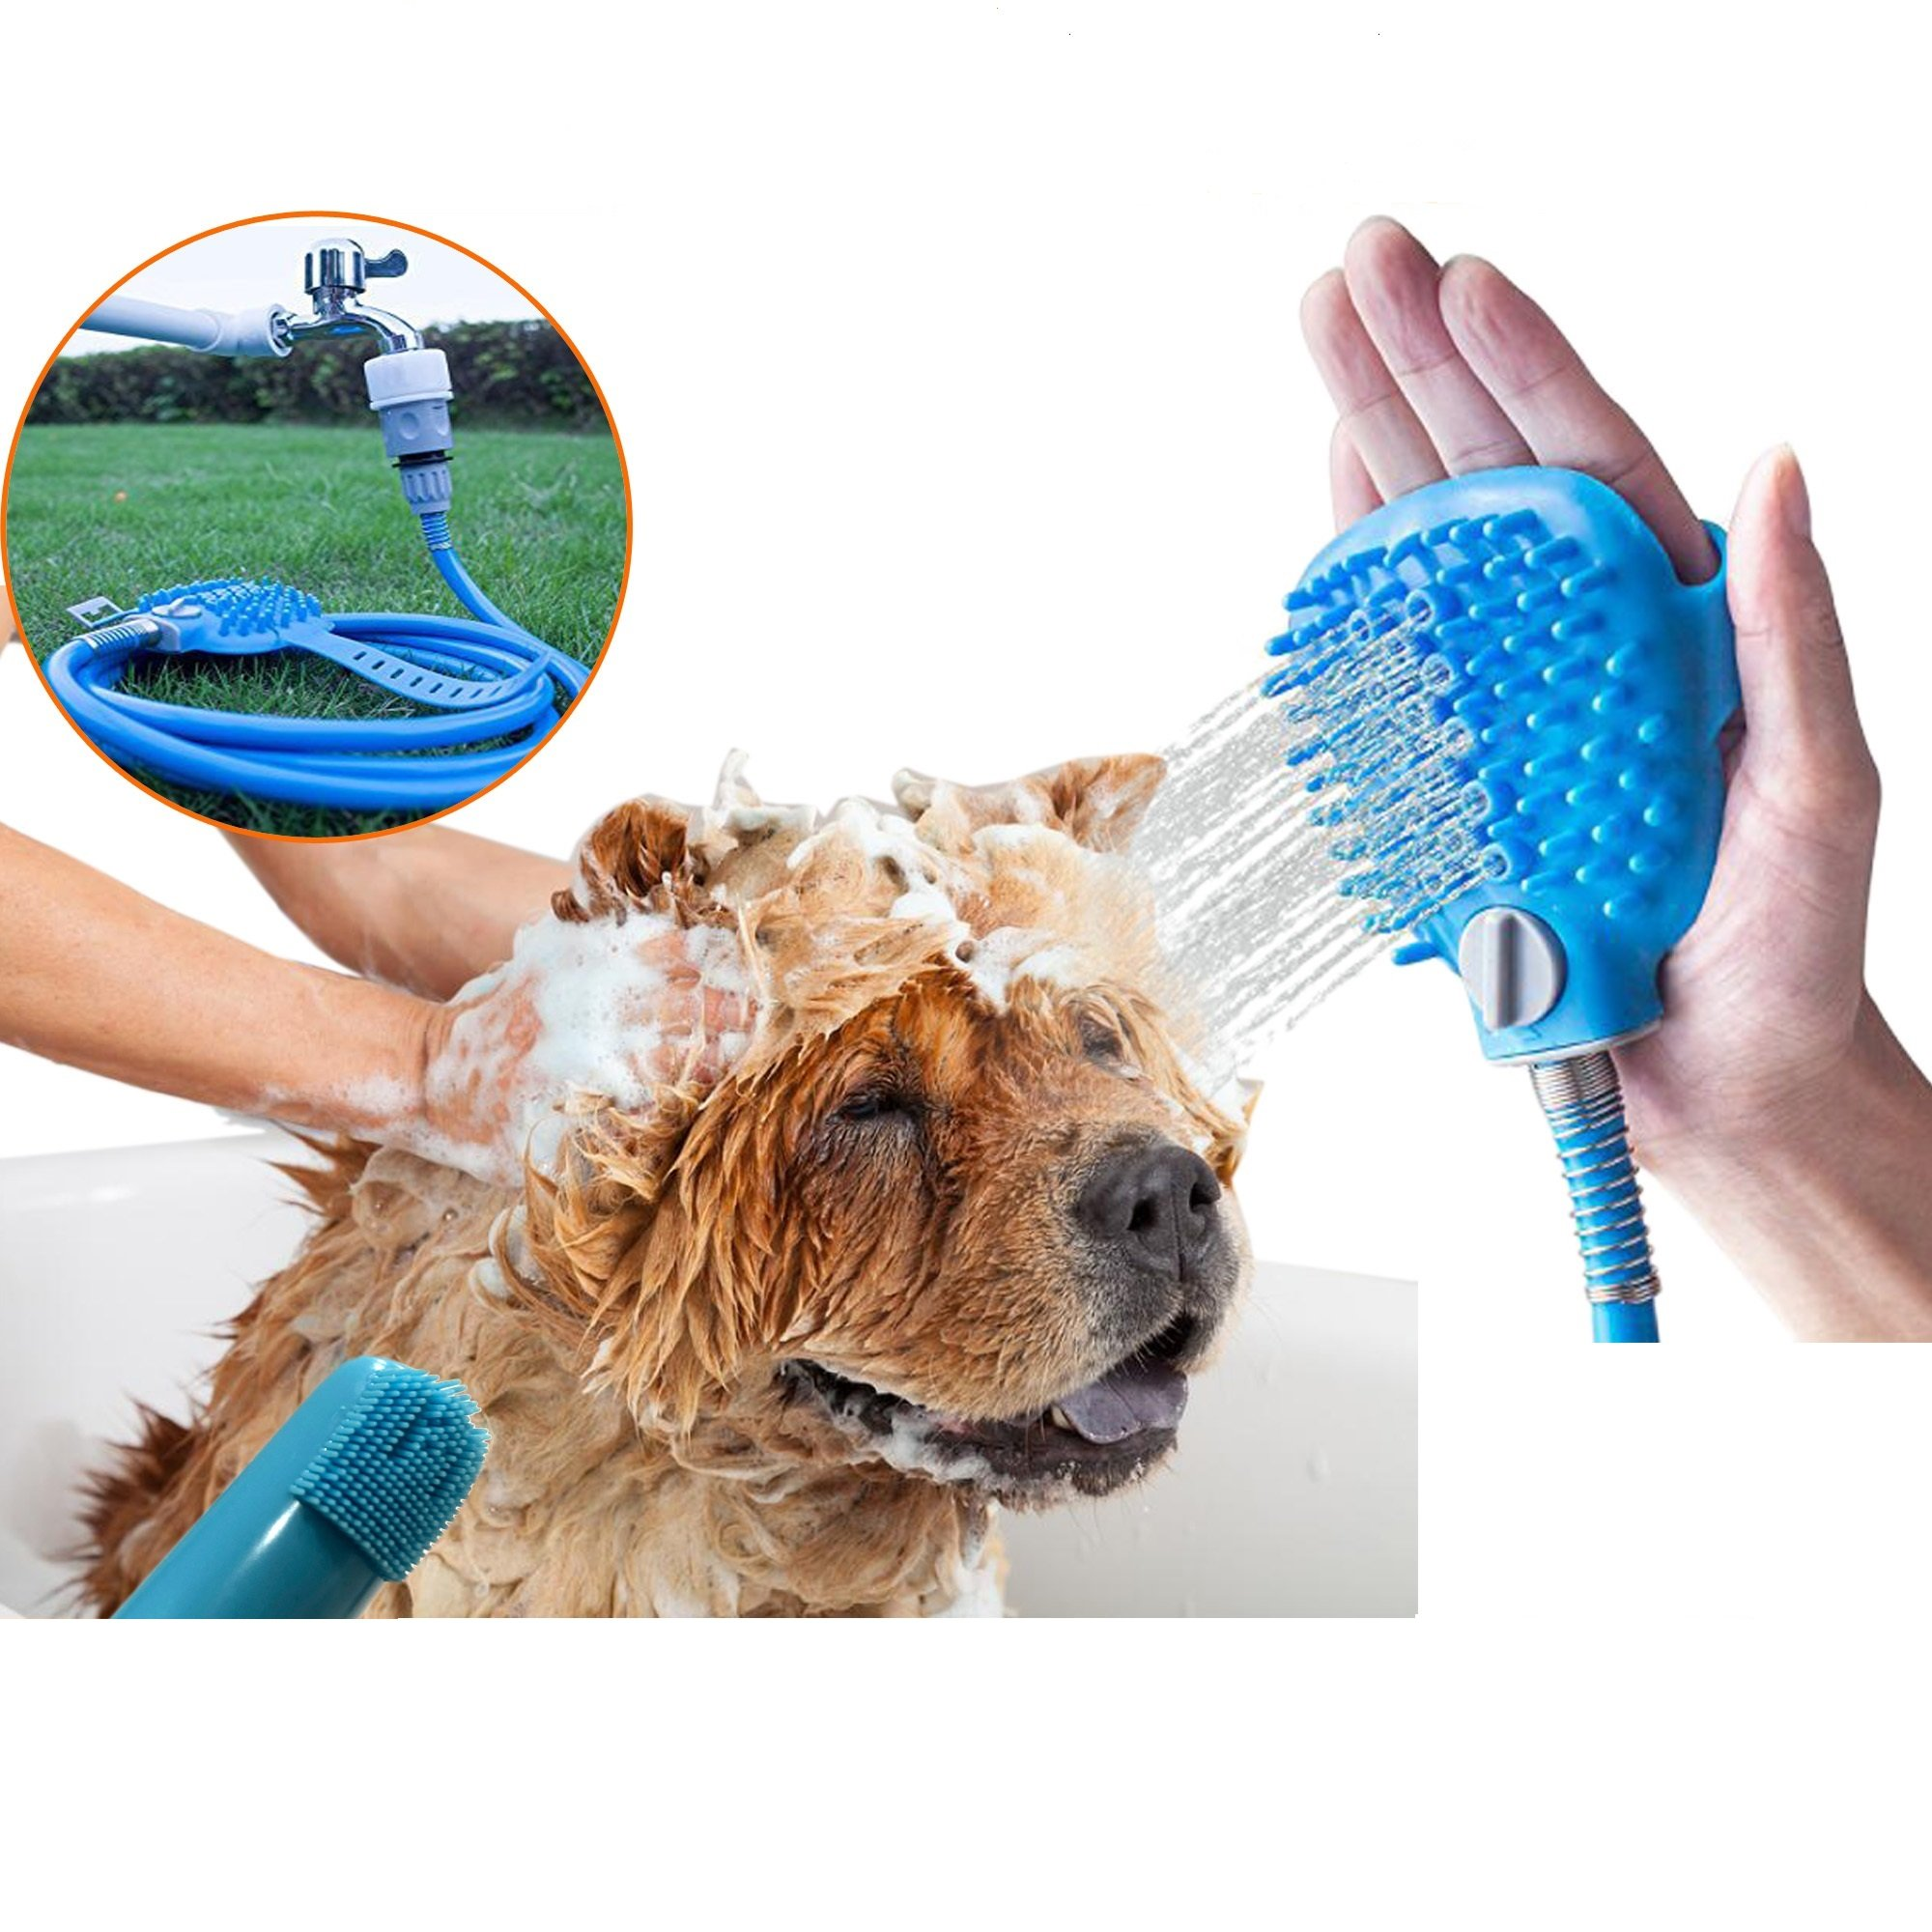 Pet Shower Sprayer Bathing Tool,Dog and Cat Multi-Functional Sprayer And Scrubber 2 in 1 Complete Grooming Kit,Indoor and Outdoor Use With 4 Faucet Adapters Combo With Soft Silicone Toothbrush